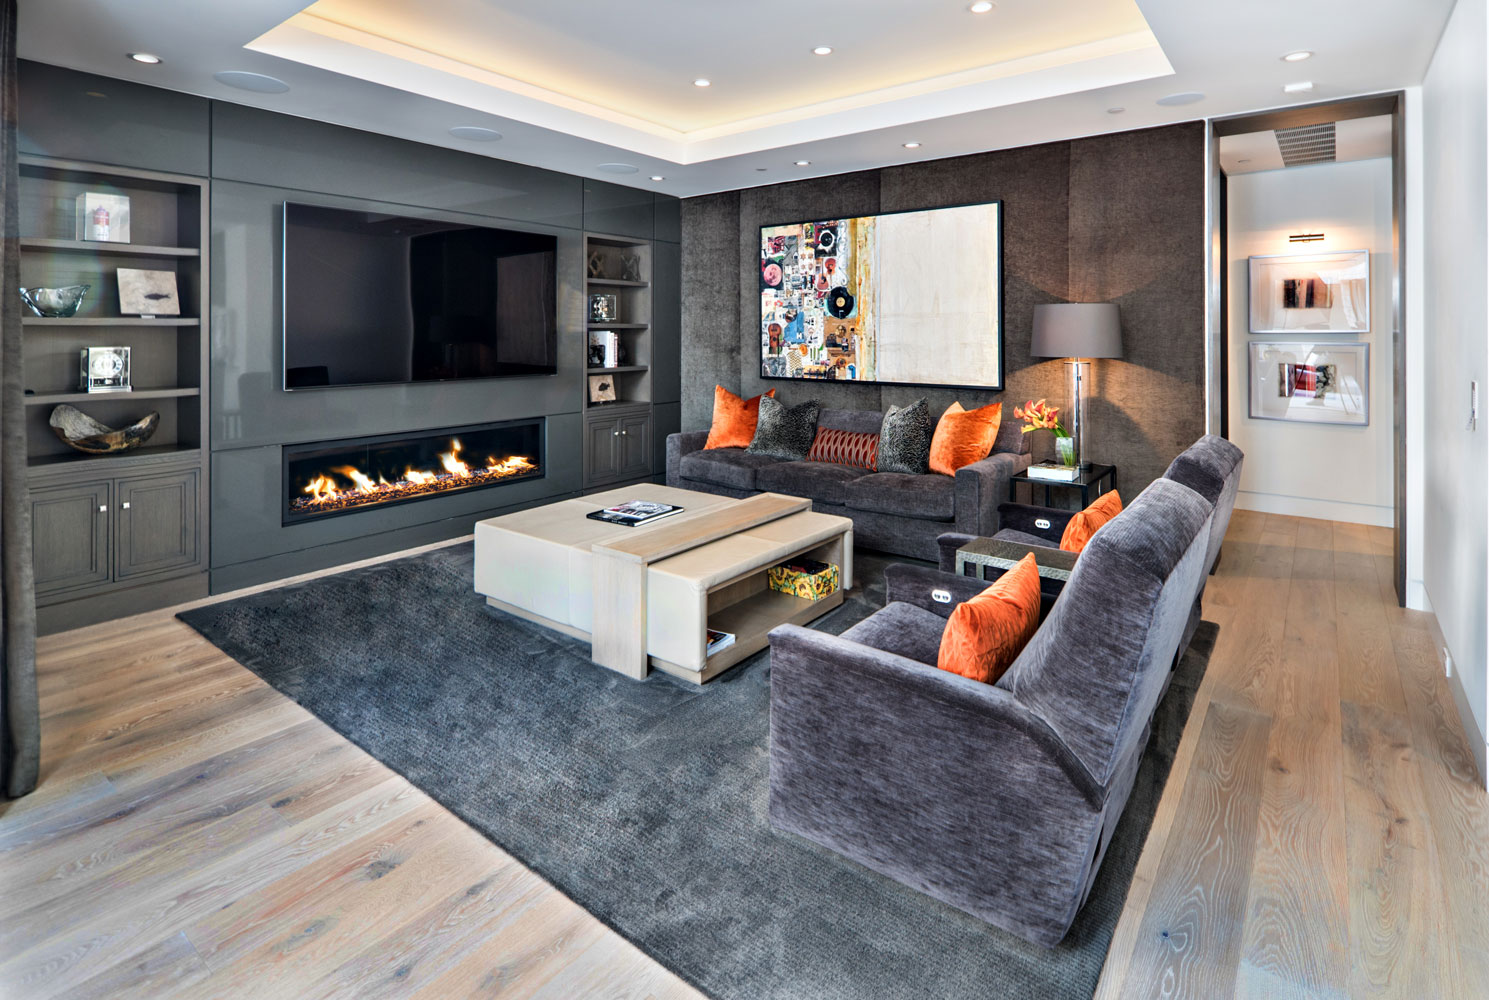 Modern-Screening-Room-Built-In-Cabinets-Fireplace--Corbin-Reeves.jpg